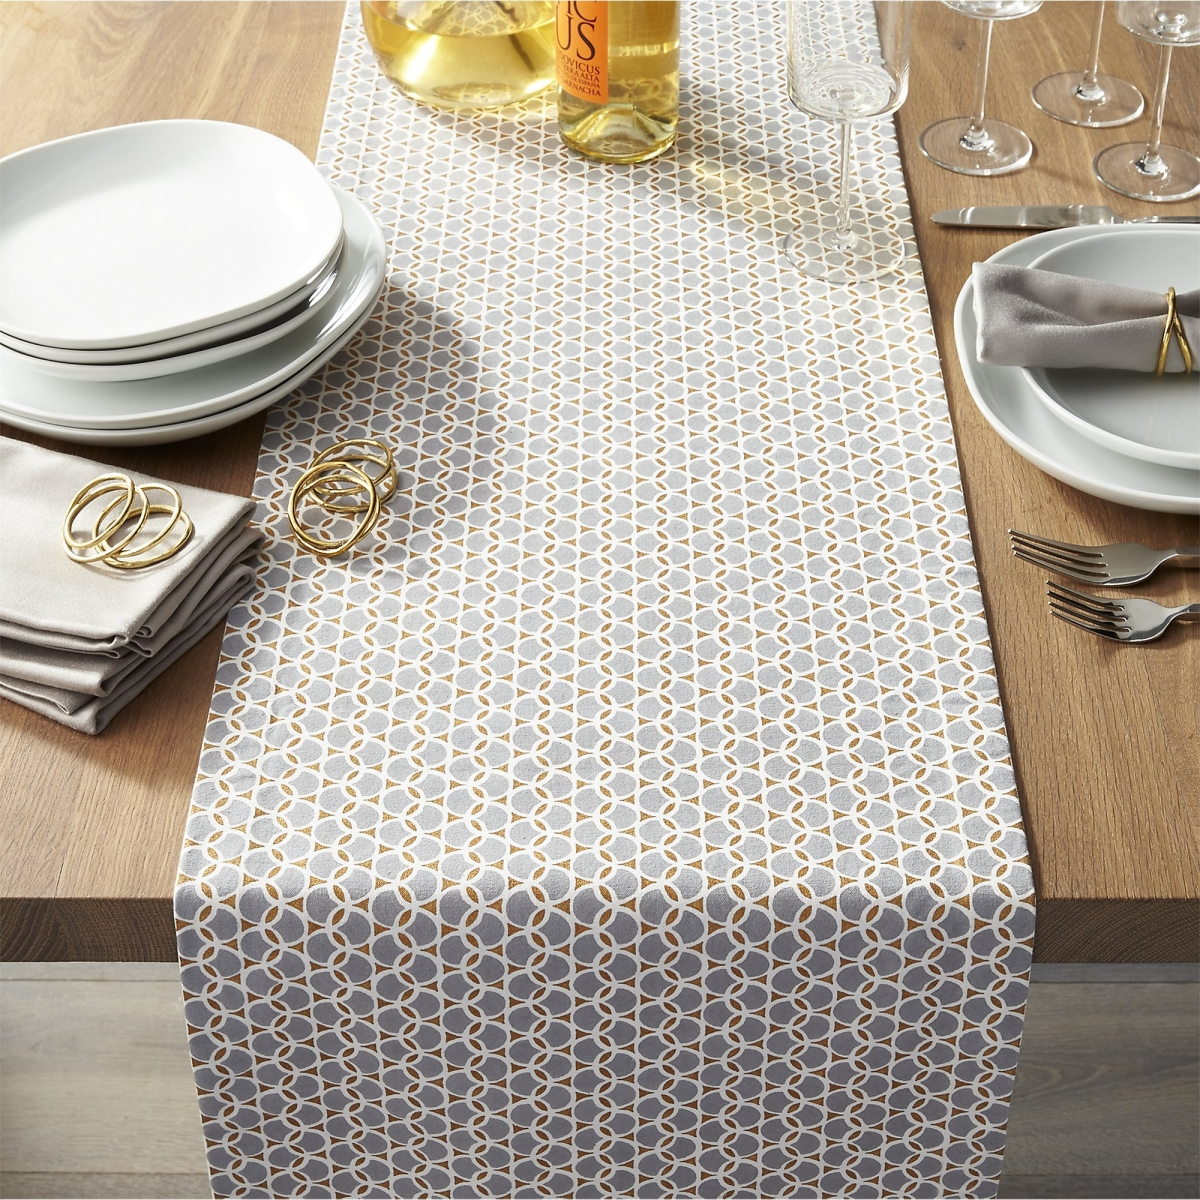 Geometric table runner from Crate & Barrel